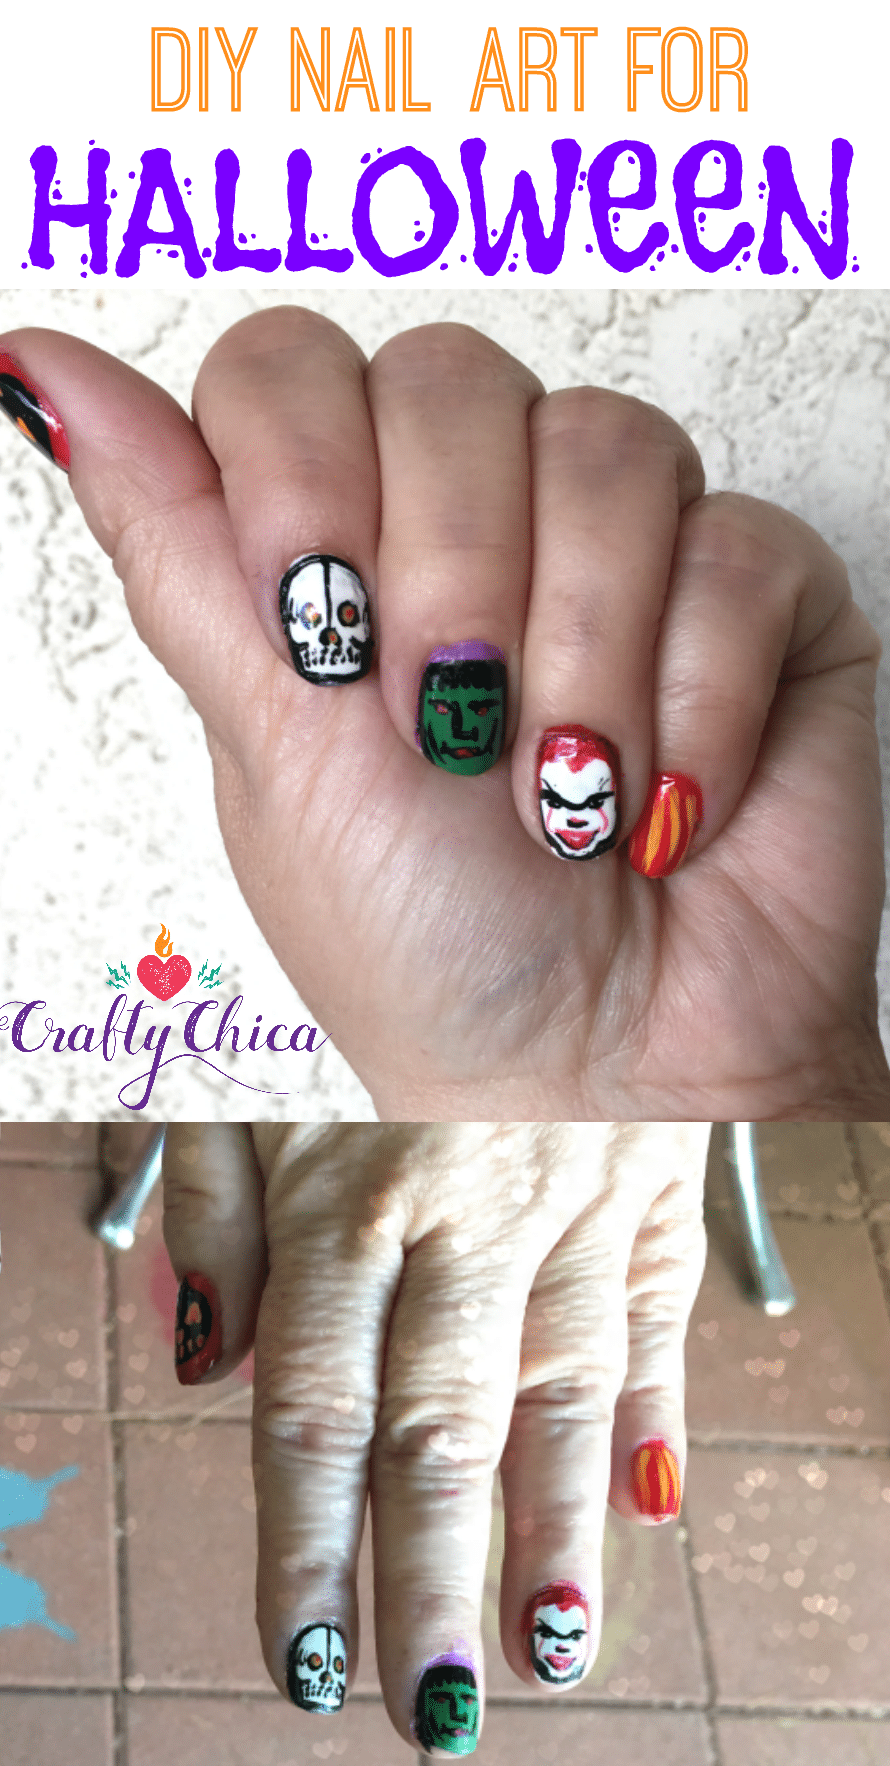 Pennywise (and more) Halloween Nail Art DIY - The Crafty Chica